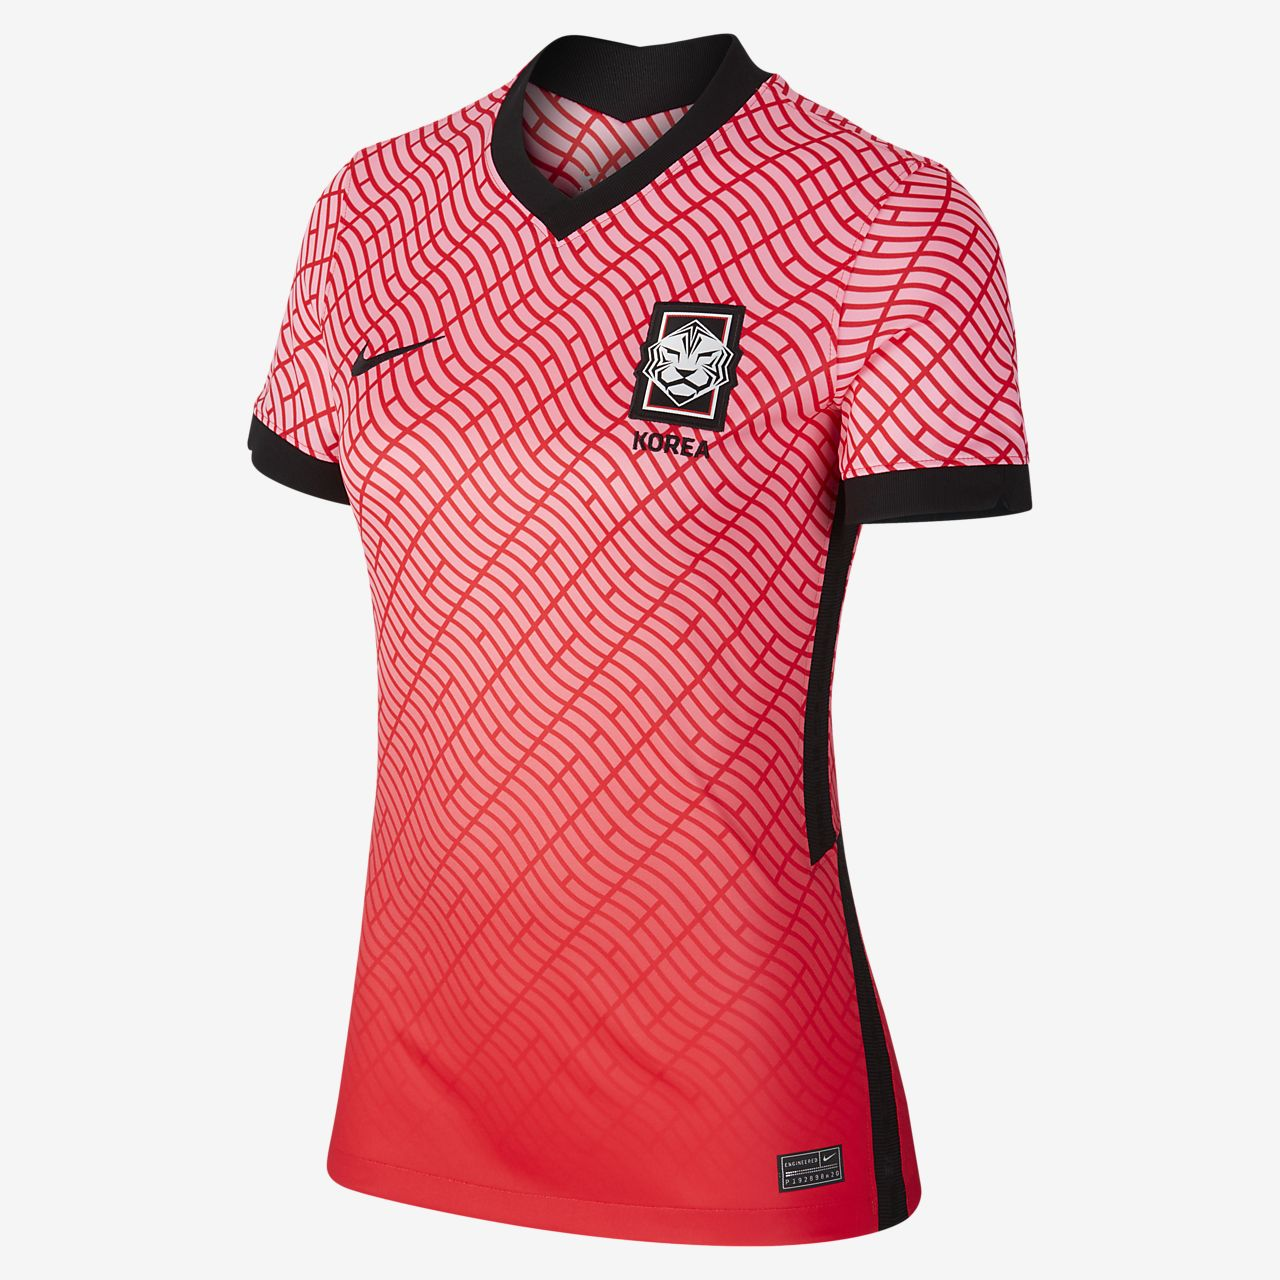 Korea 2020 Stadium Home Women's Football Shirt